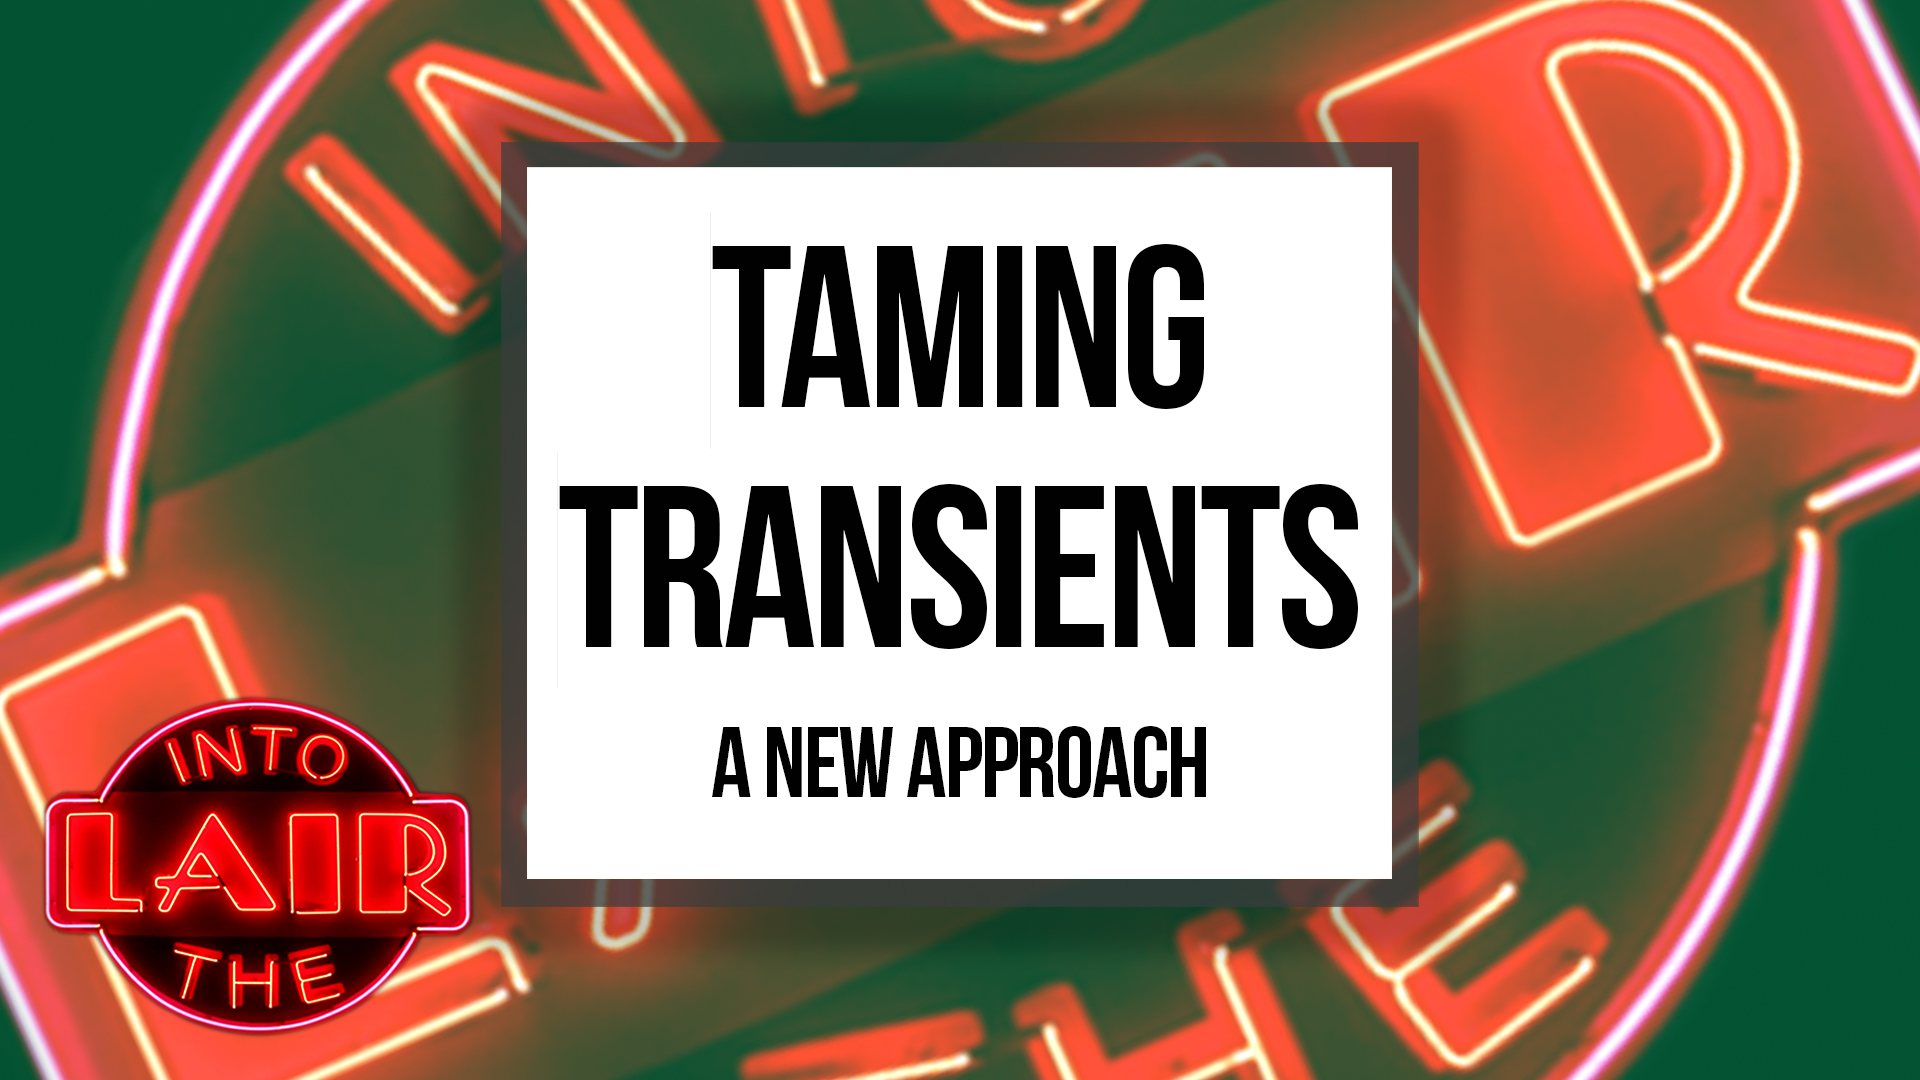 Taming Transients (A New Approach)